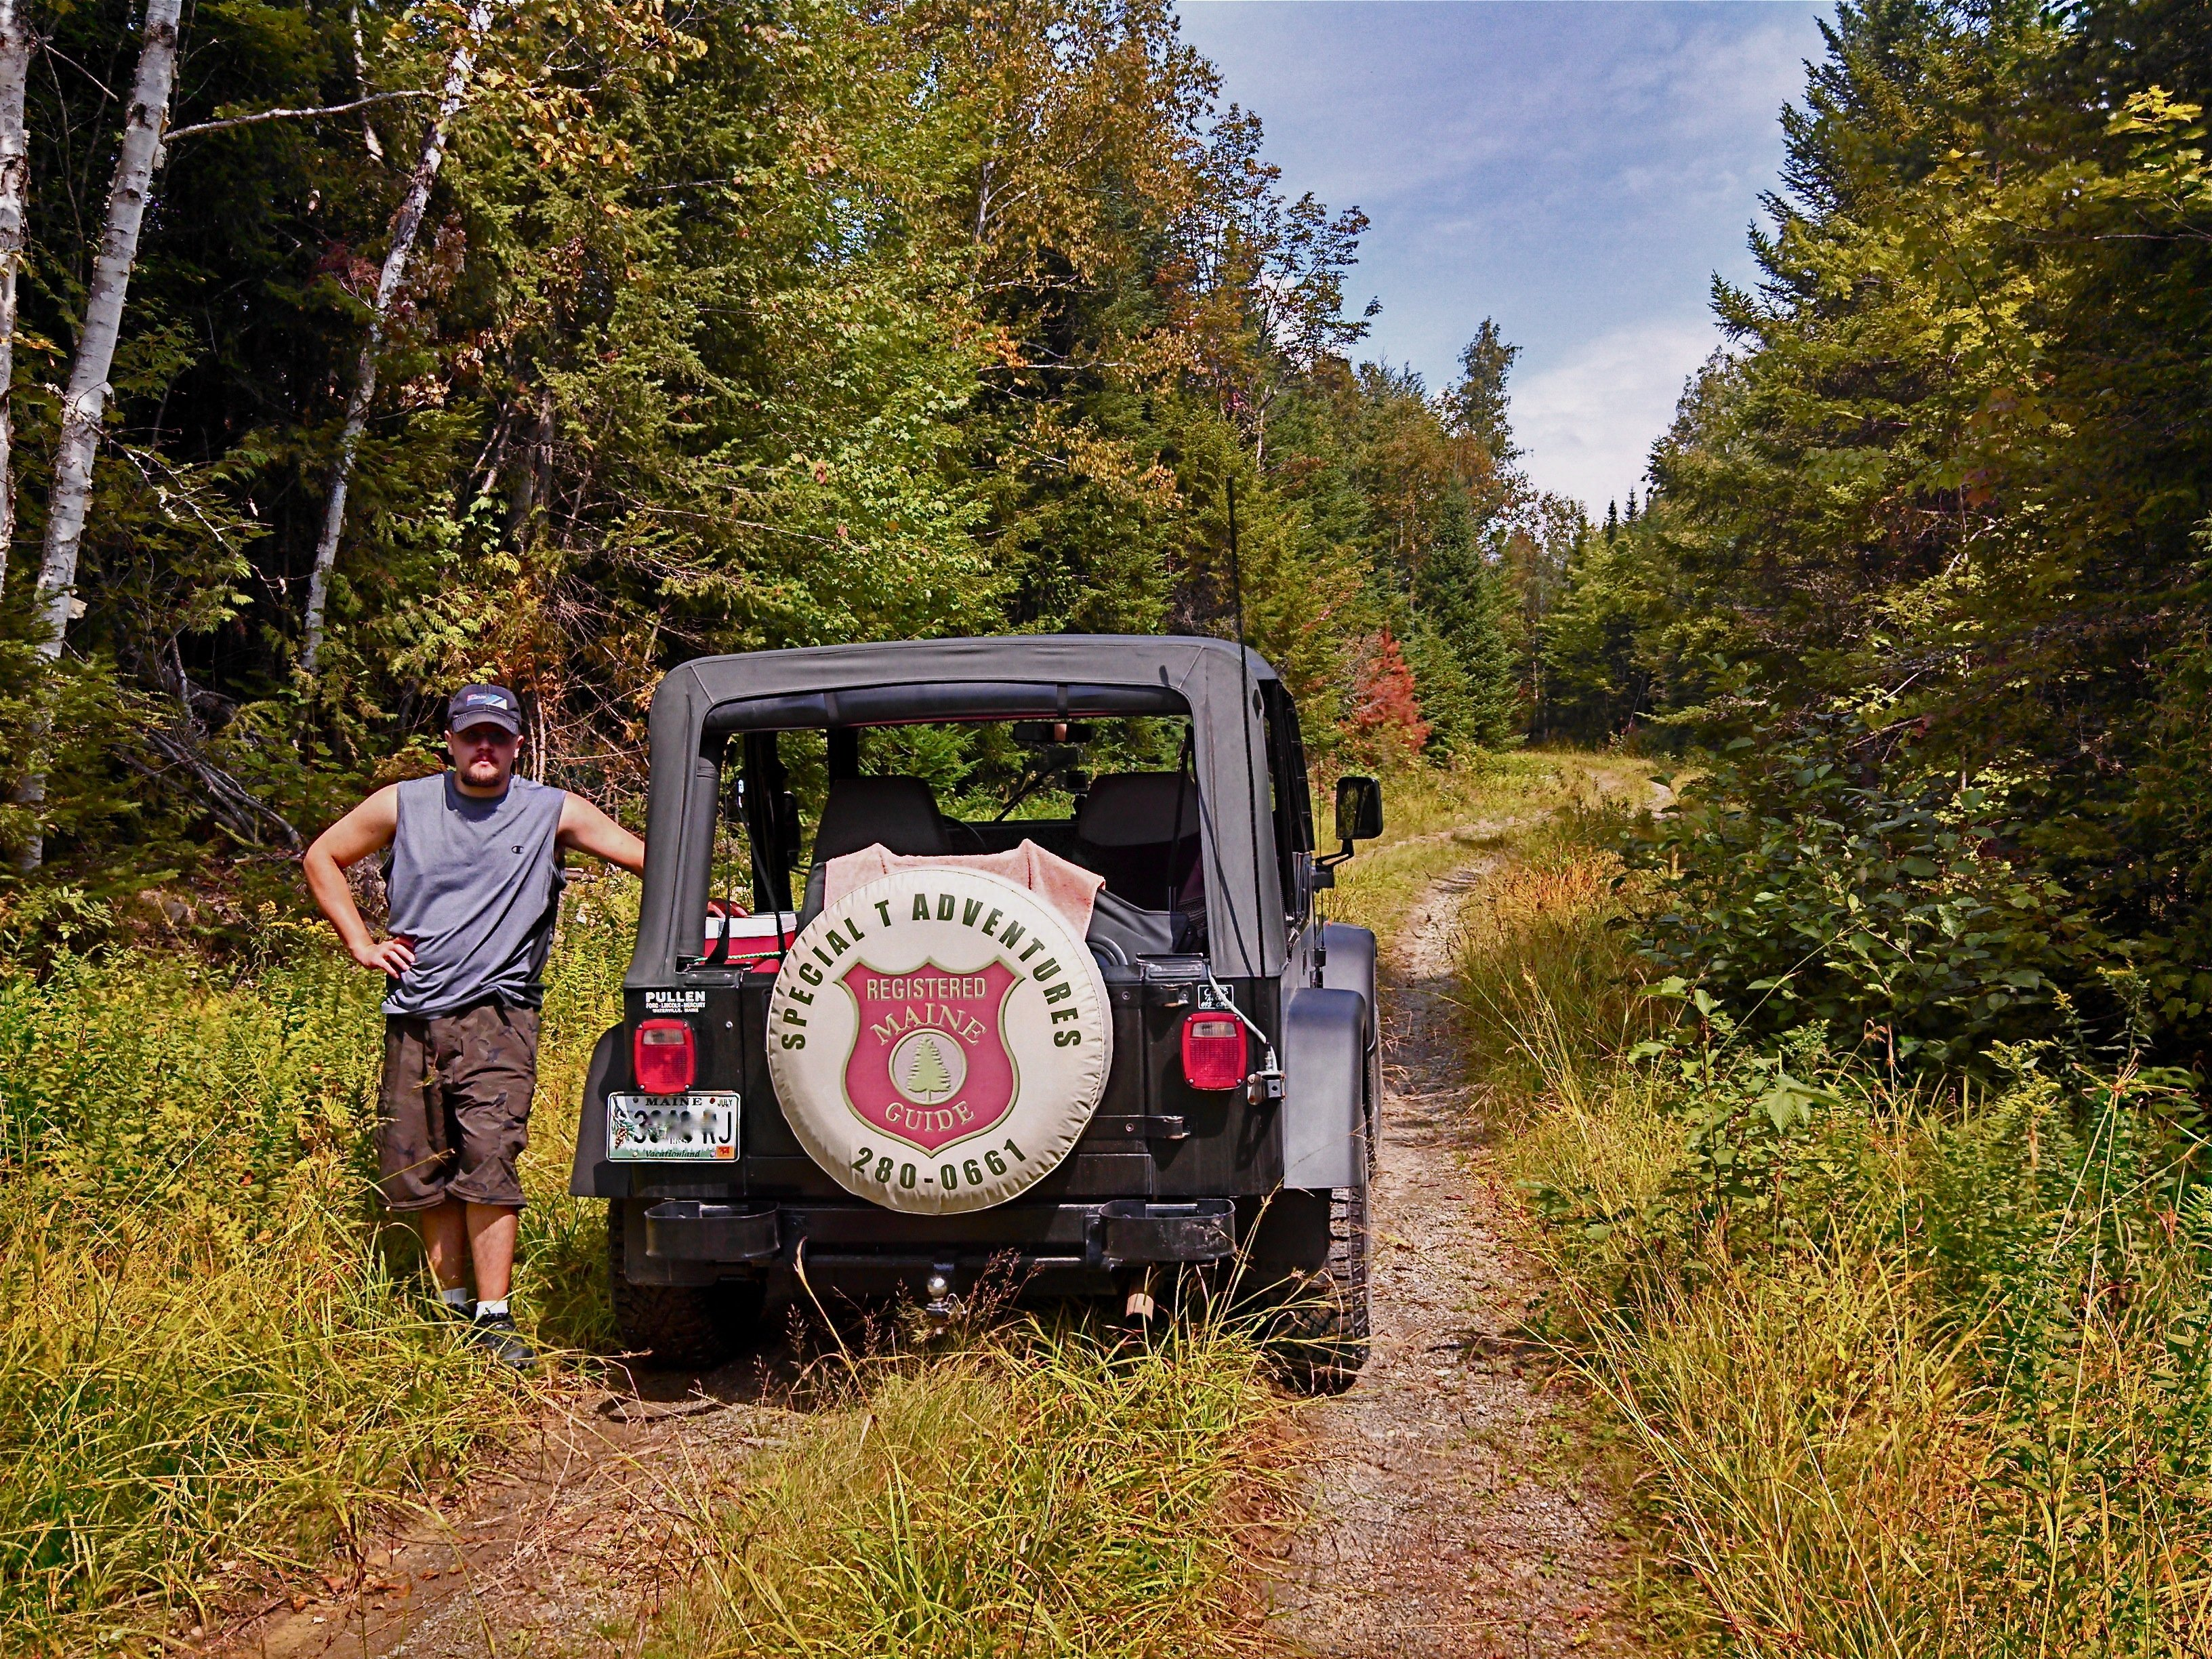 Scenic Jeep Safaris through the woods of maine!